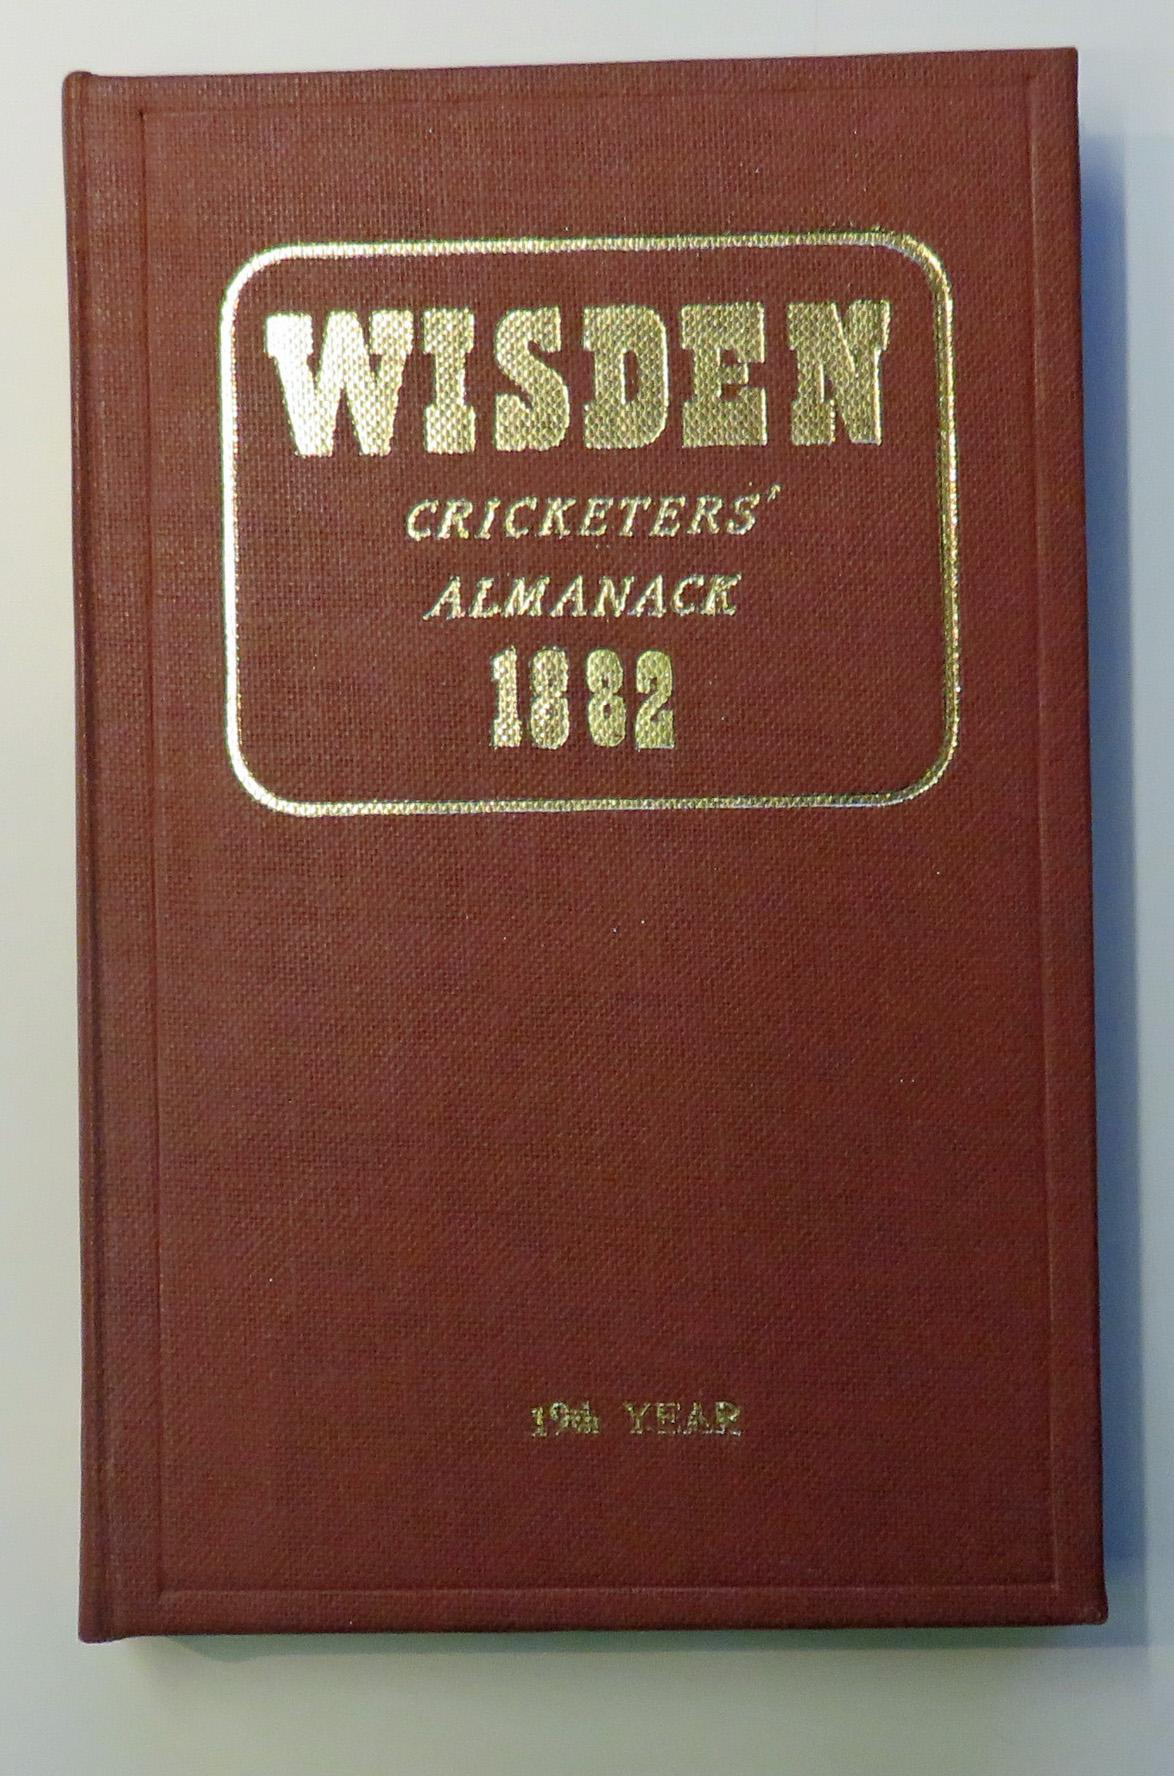 **John Wisden's Cricketers' Almanack For 1882